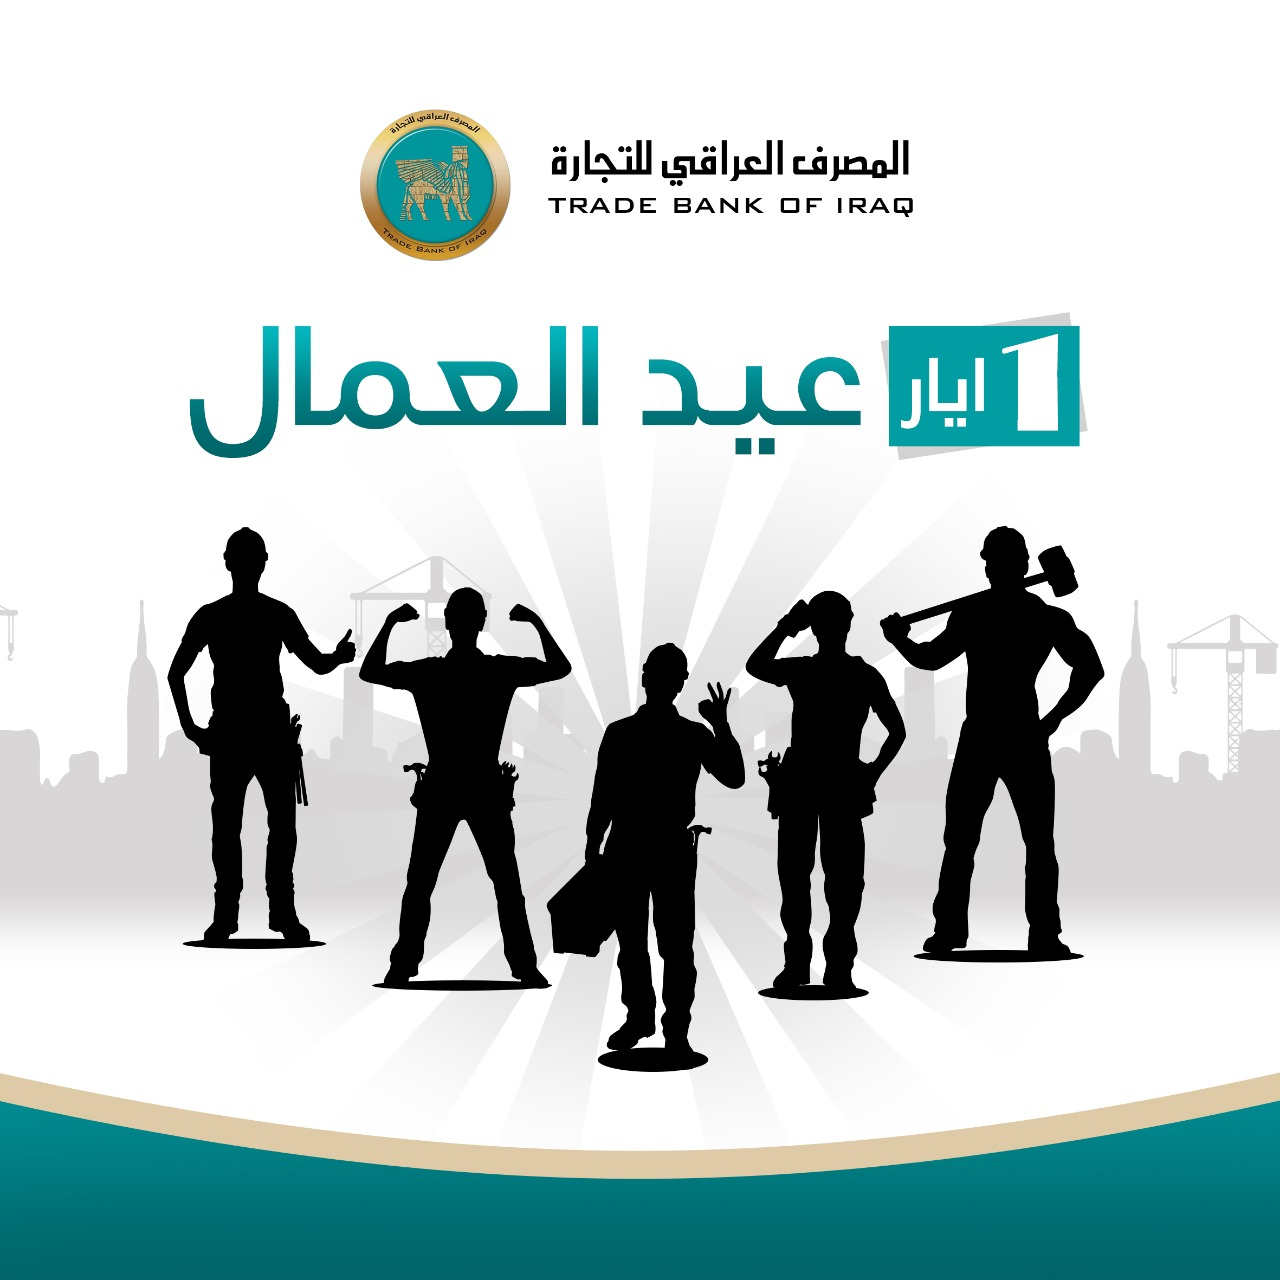 The President of the Iraqi Trade Bank and members of the Board of Directors and all the members of the Board of Directors shall extend congratulations and congratulations to all workers on the occasion of their holiday on May 1, 2019.  Every year you are  Workers-Day_01.05.2019